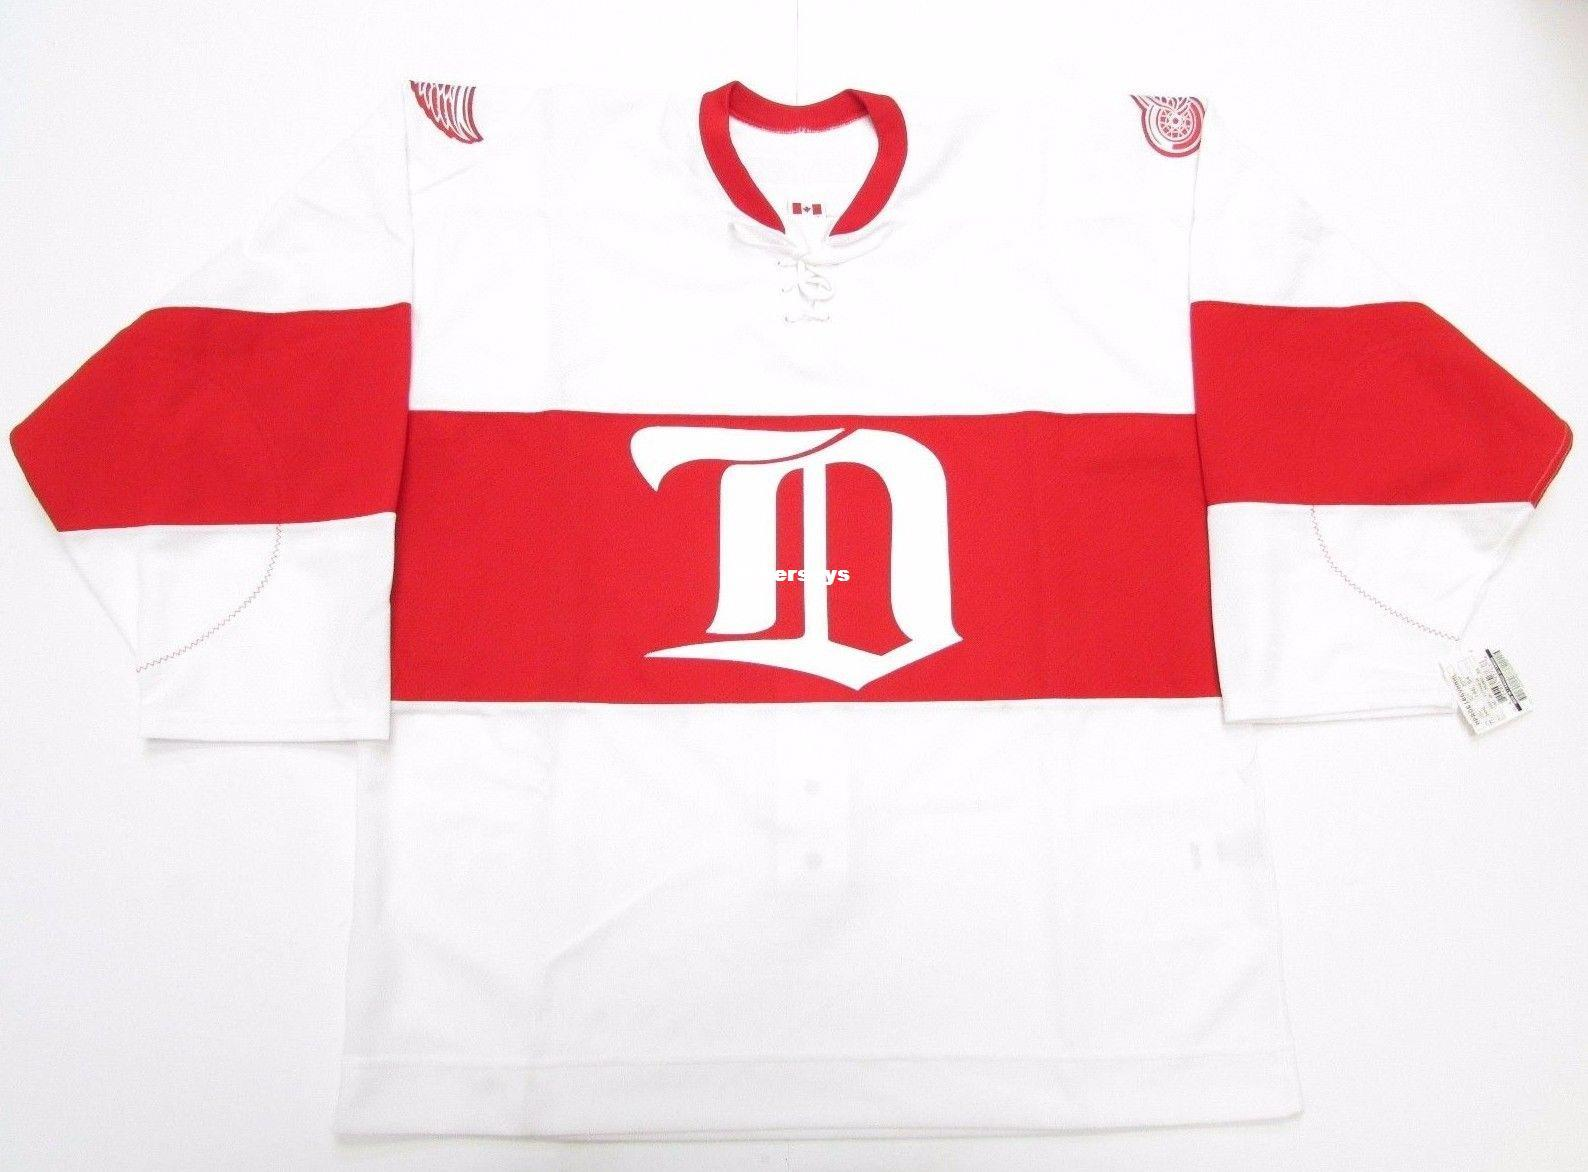 c9e5fd2bd ... vintage ccm hockey jersey mens throwback jerseys  2018 cheap custom  detroit red wings authentic white winter classic alumni ccm 6100 jersey  white thro